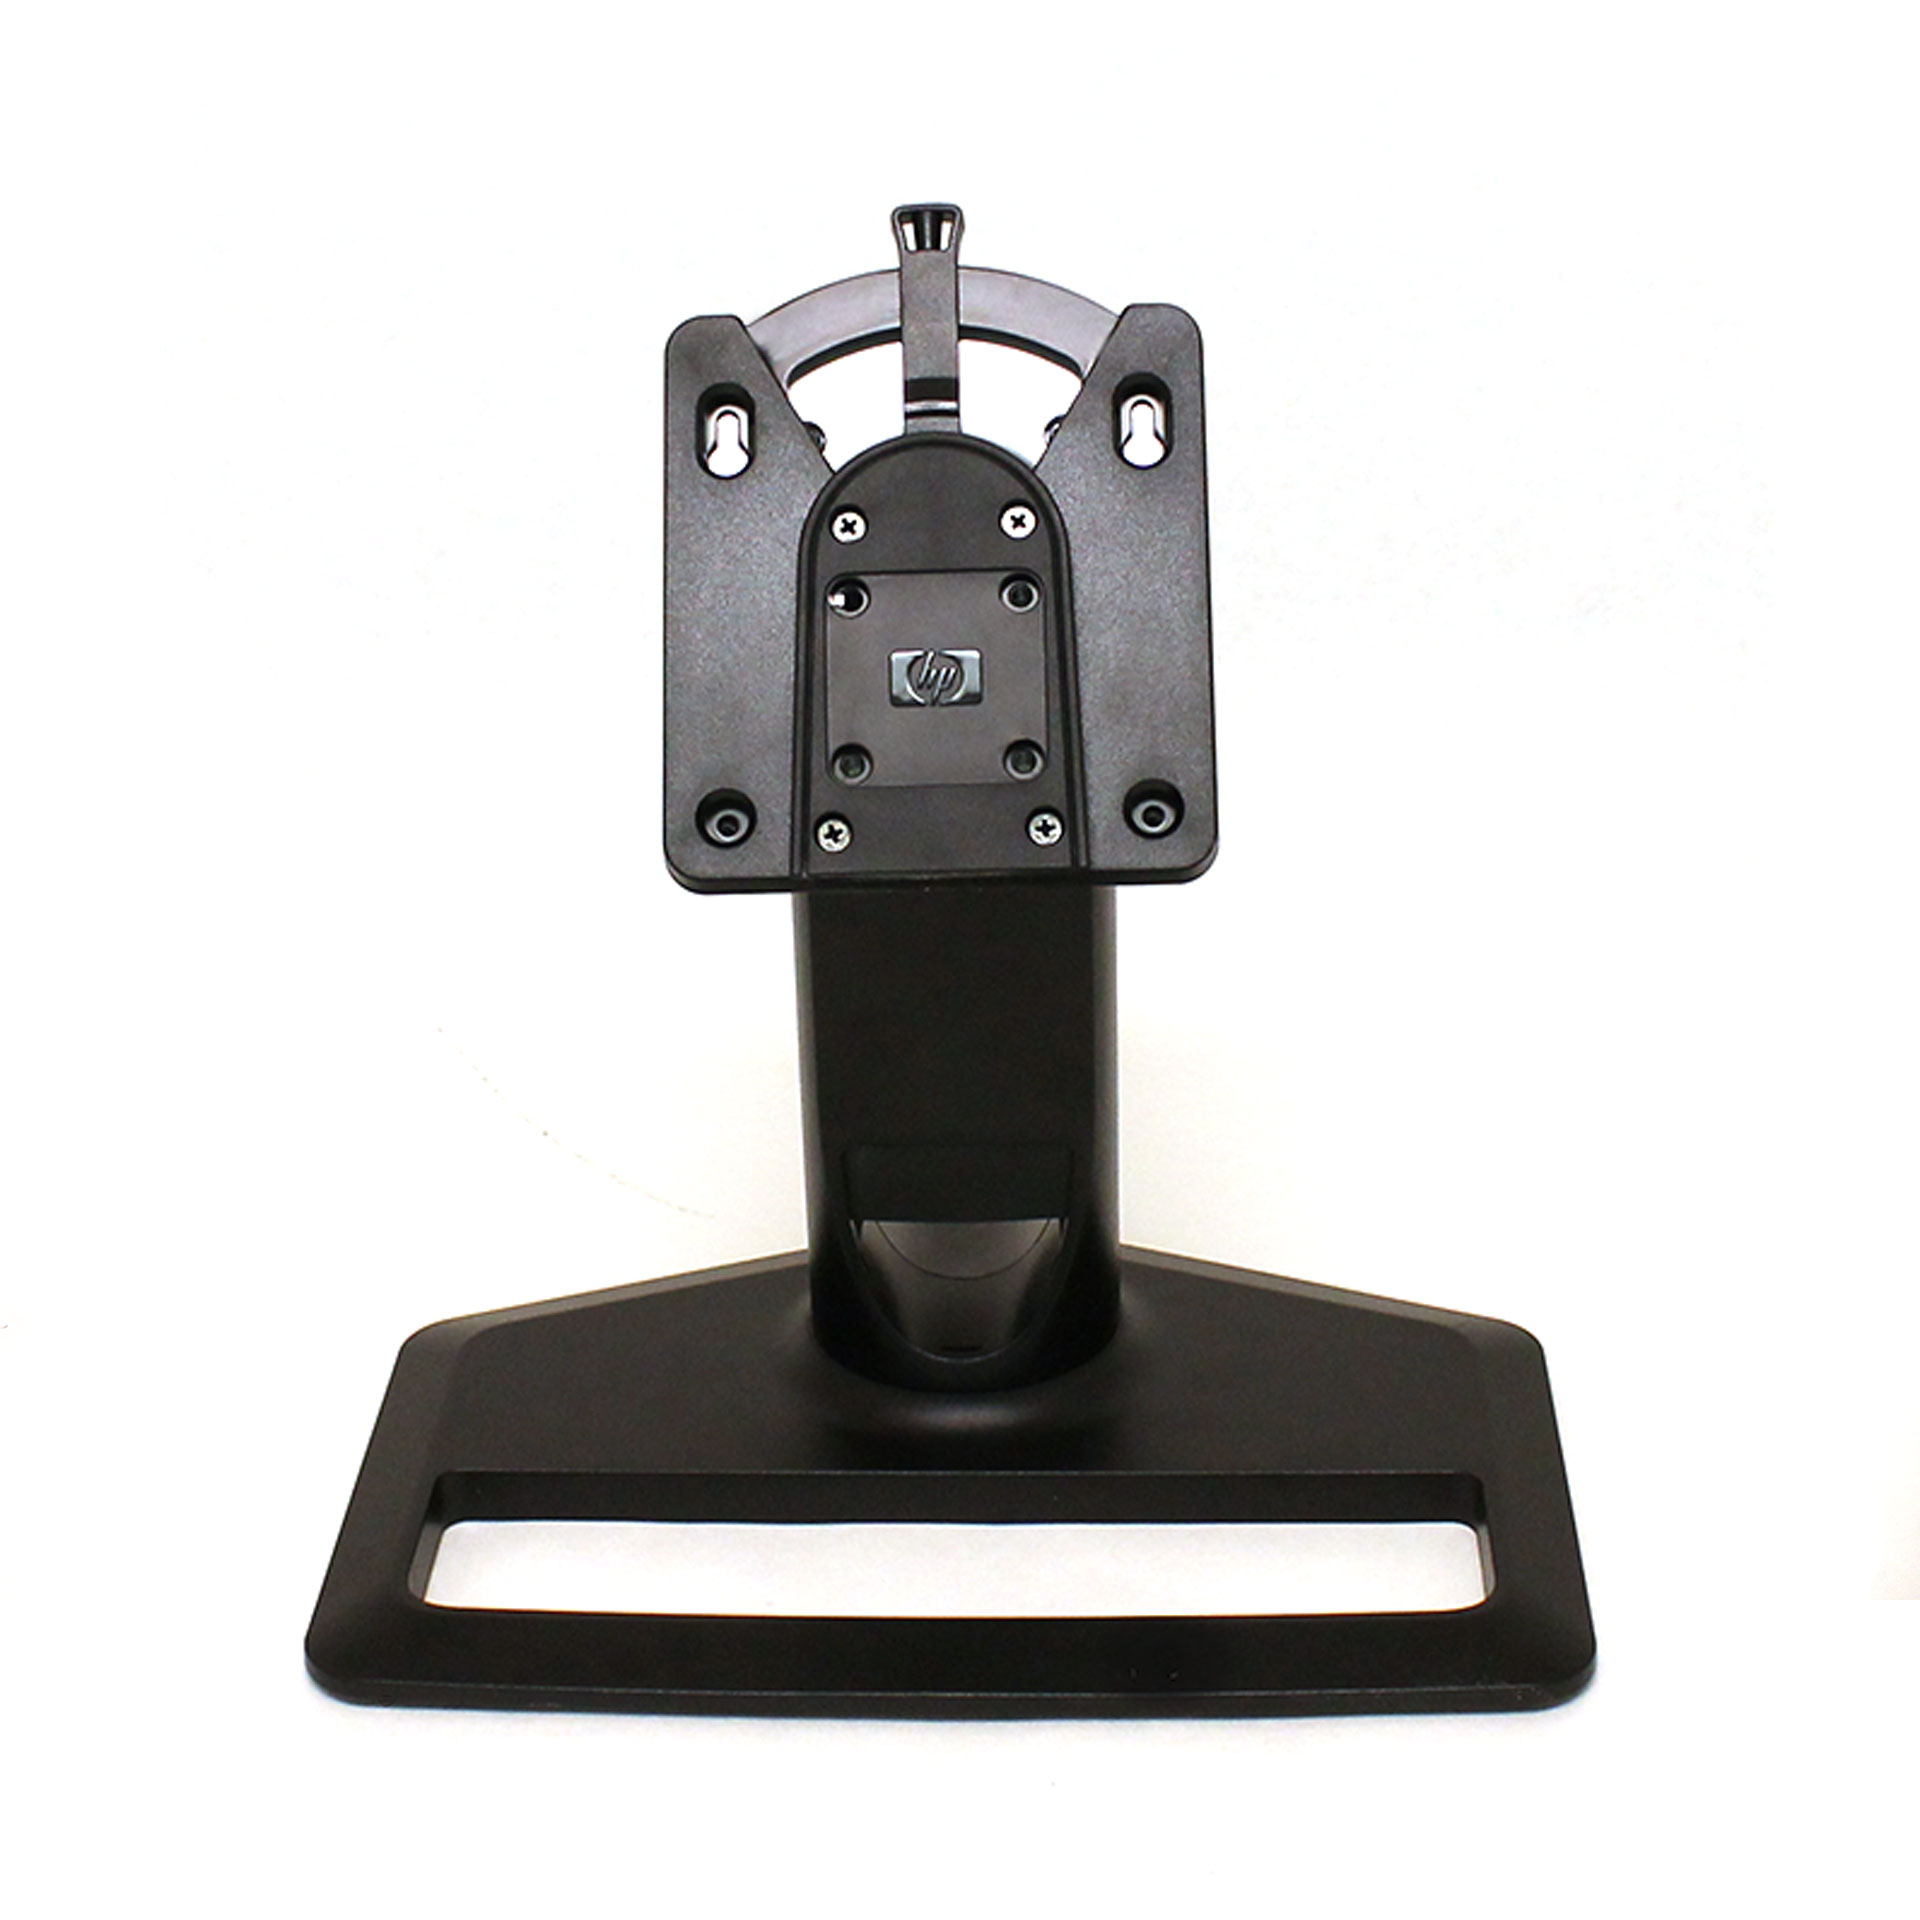 Stand (spare part) for HP ZR22w 21.5-inch Widescreen LCD Monitor